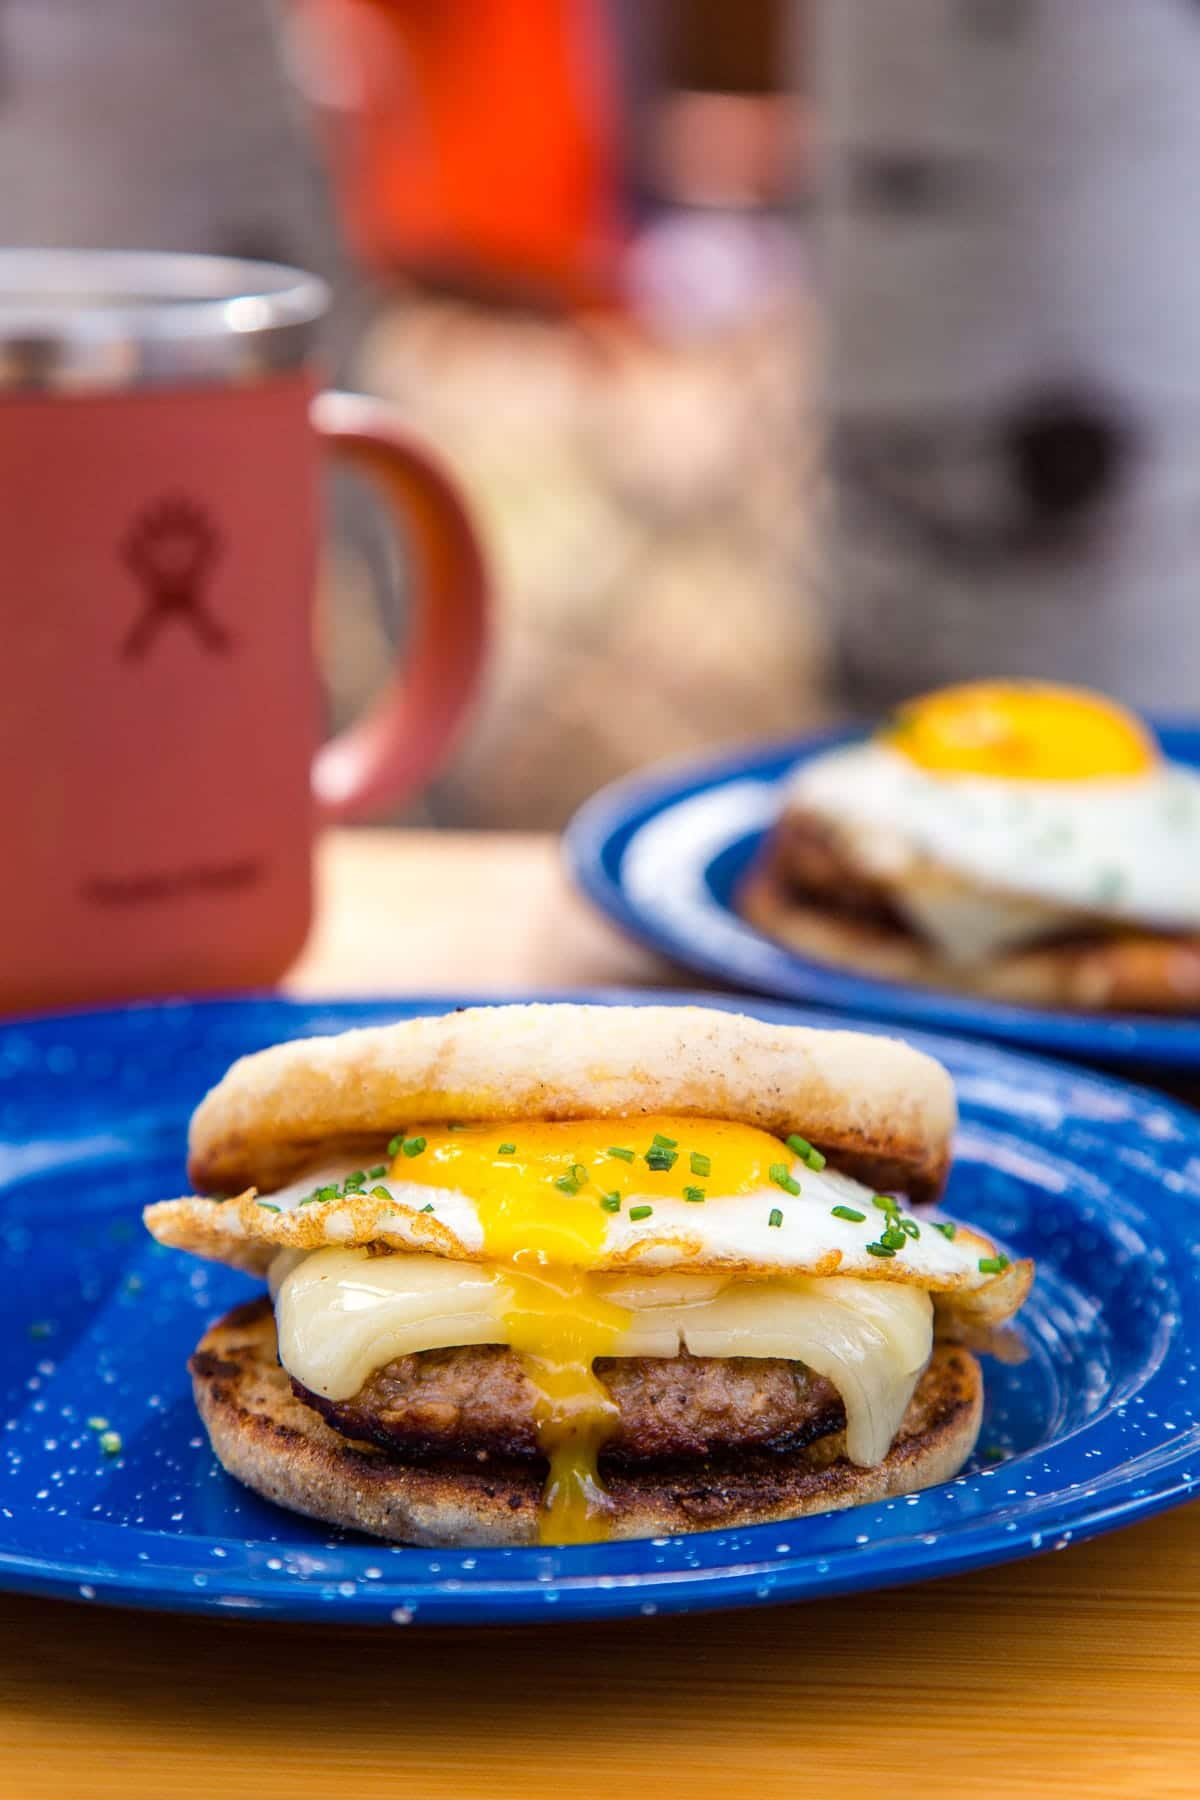 Side view of a sausage and egg sandwich with a runny yolk.